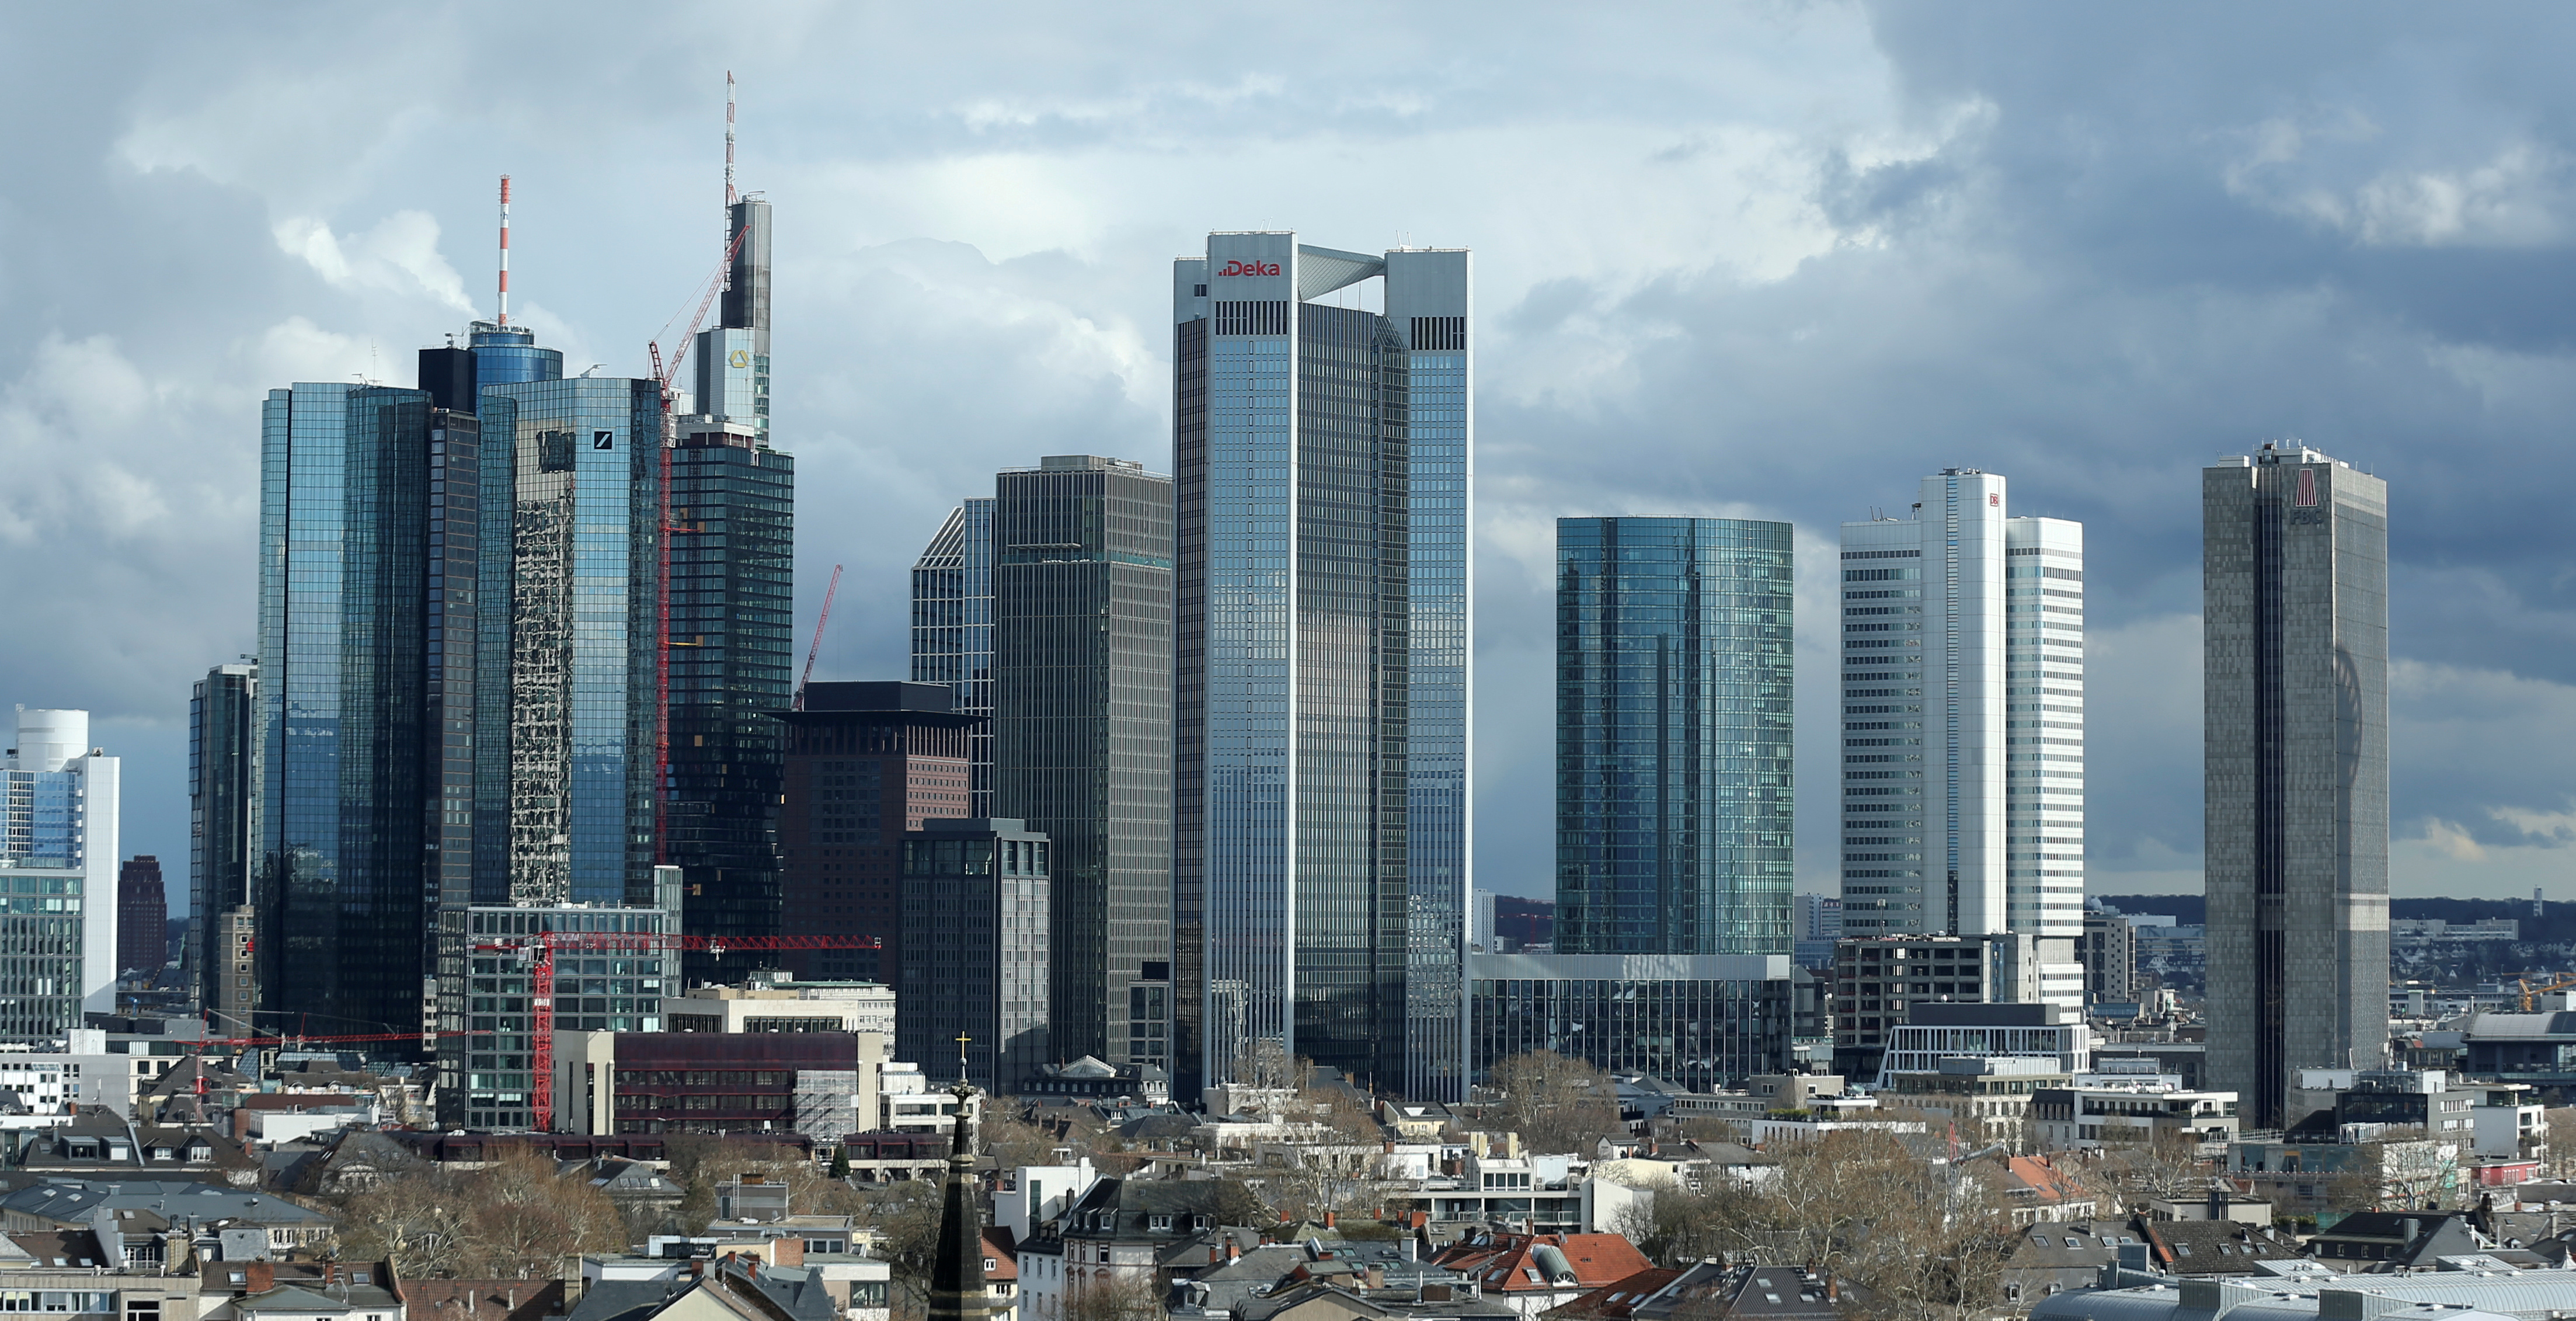 The financial district in Frankfurt, Germany, March 18, 2019. REUTERS/Ralph Orlowski